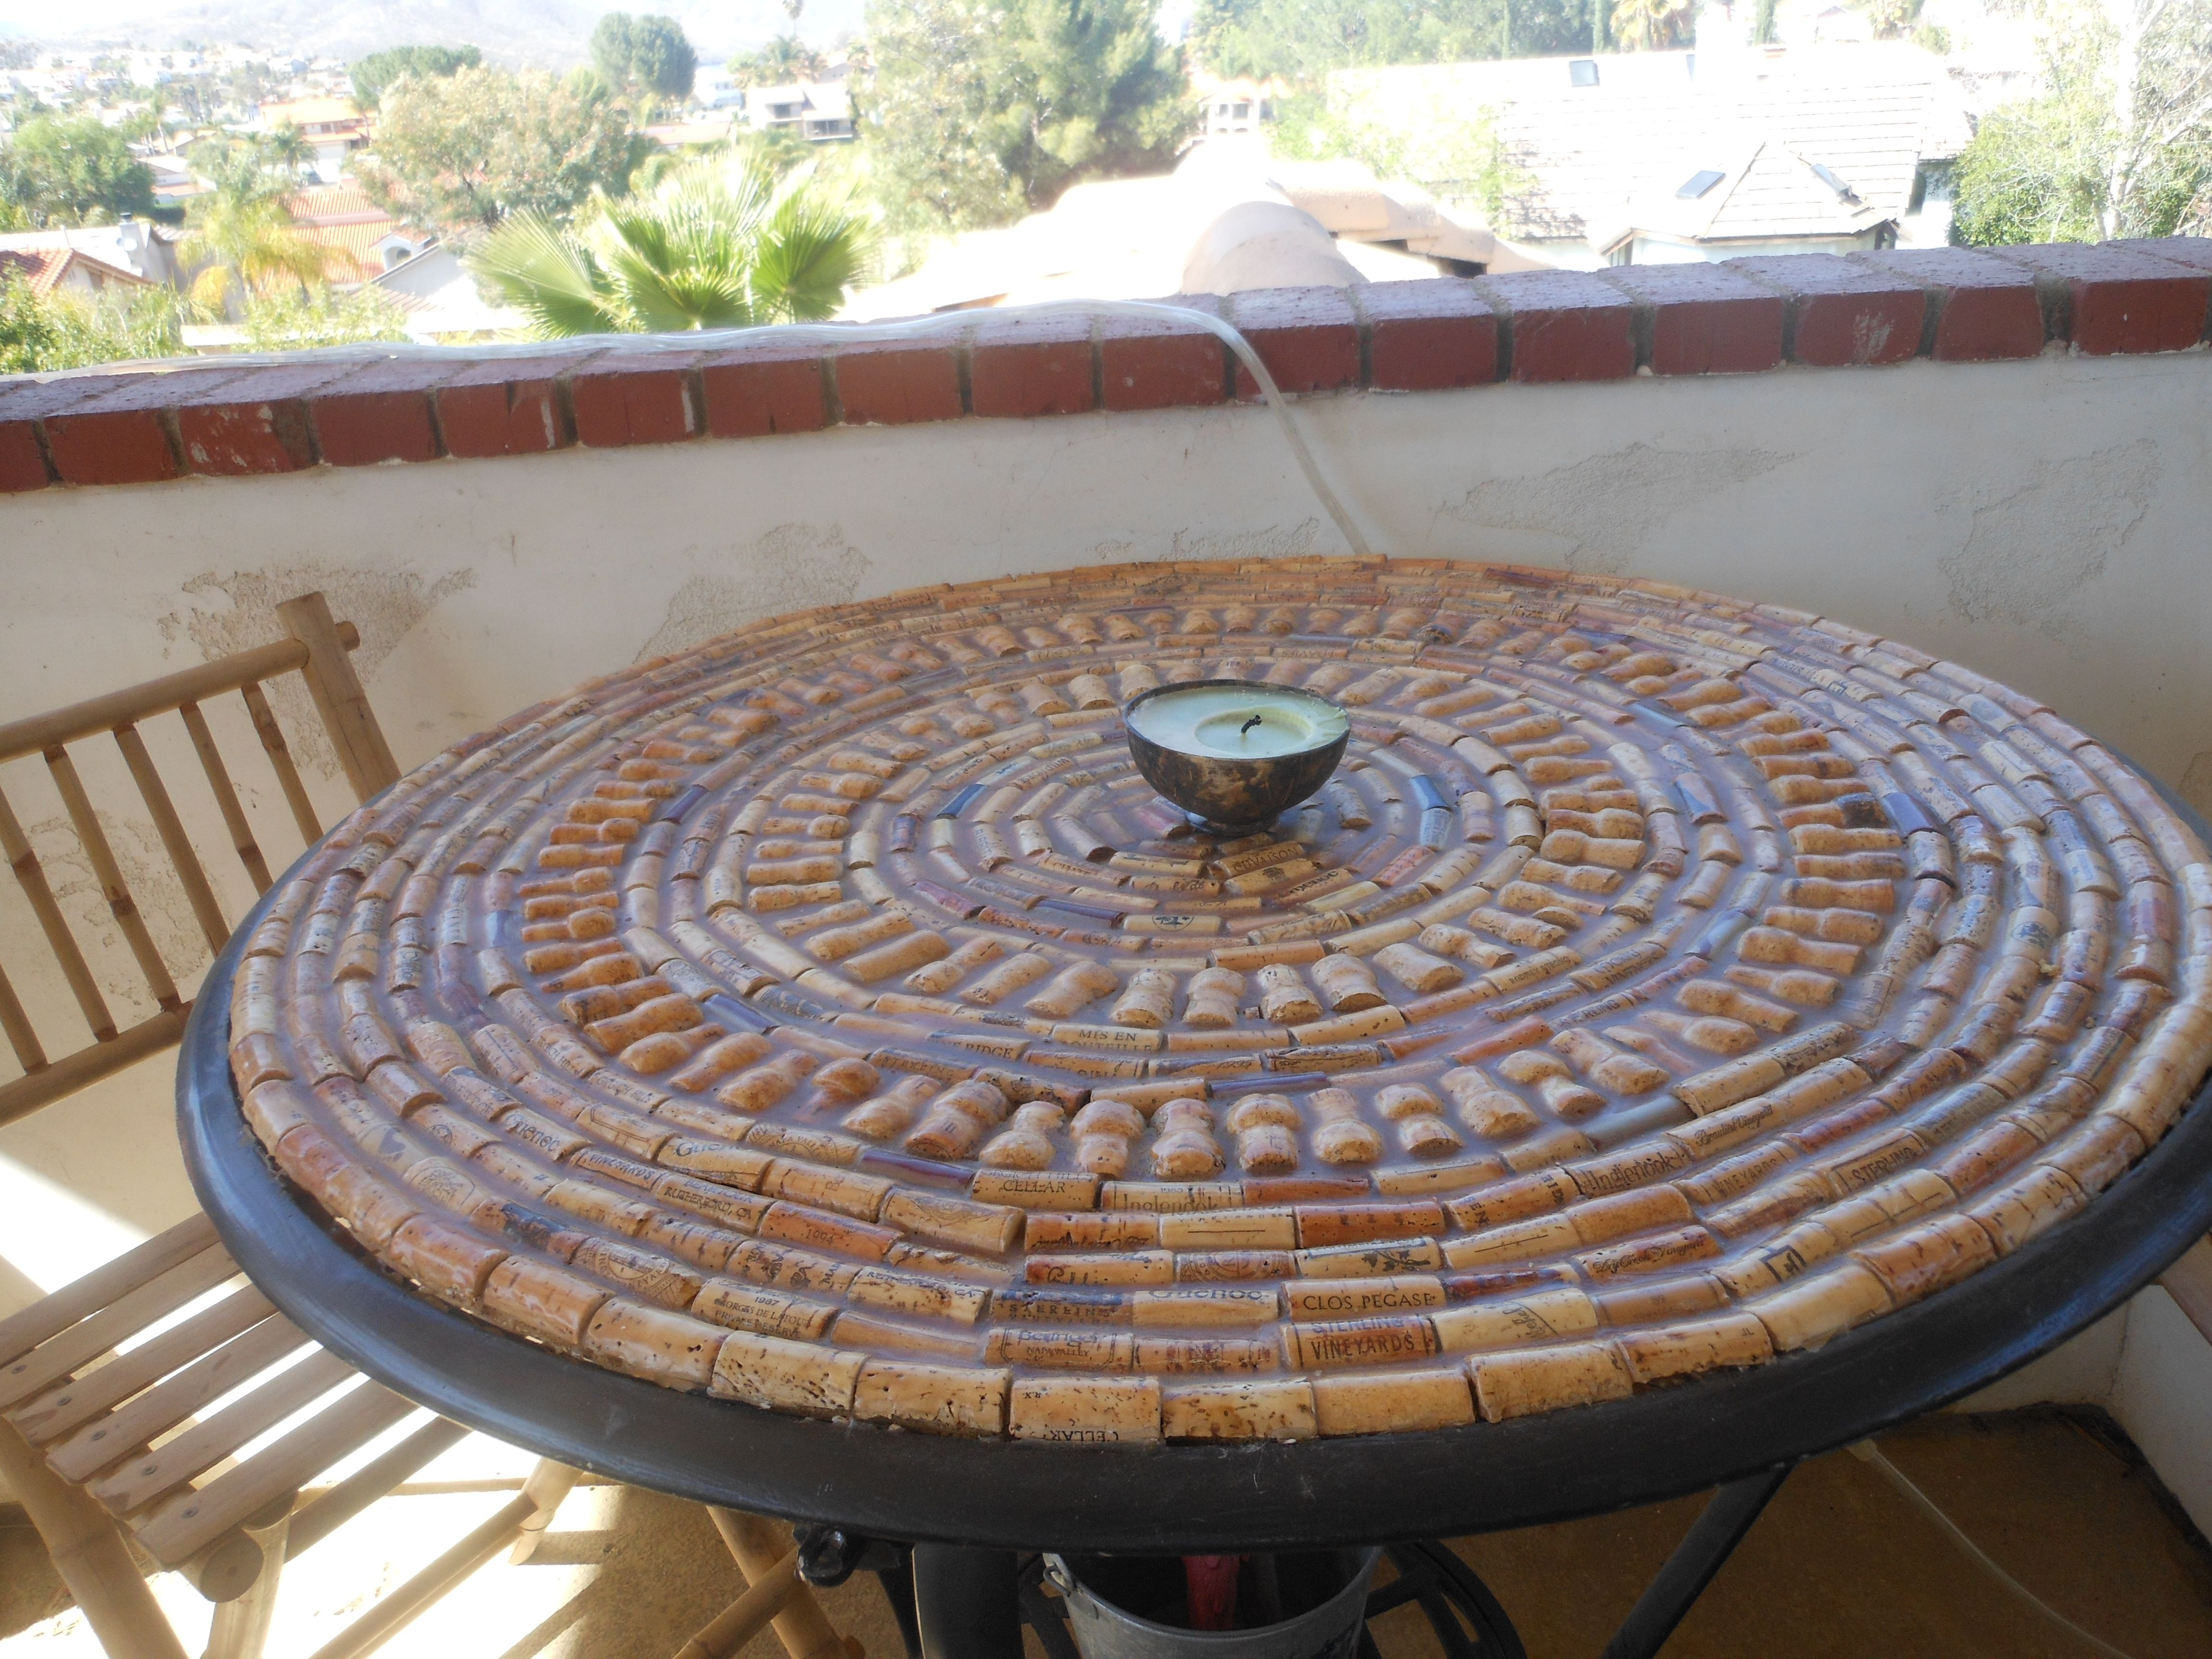 I Made This Table Top With Corks And Resin.